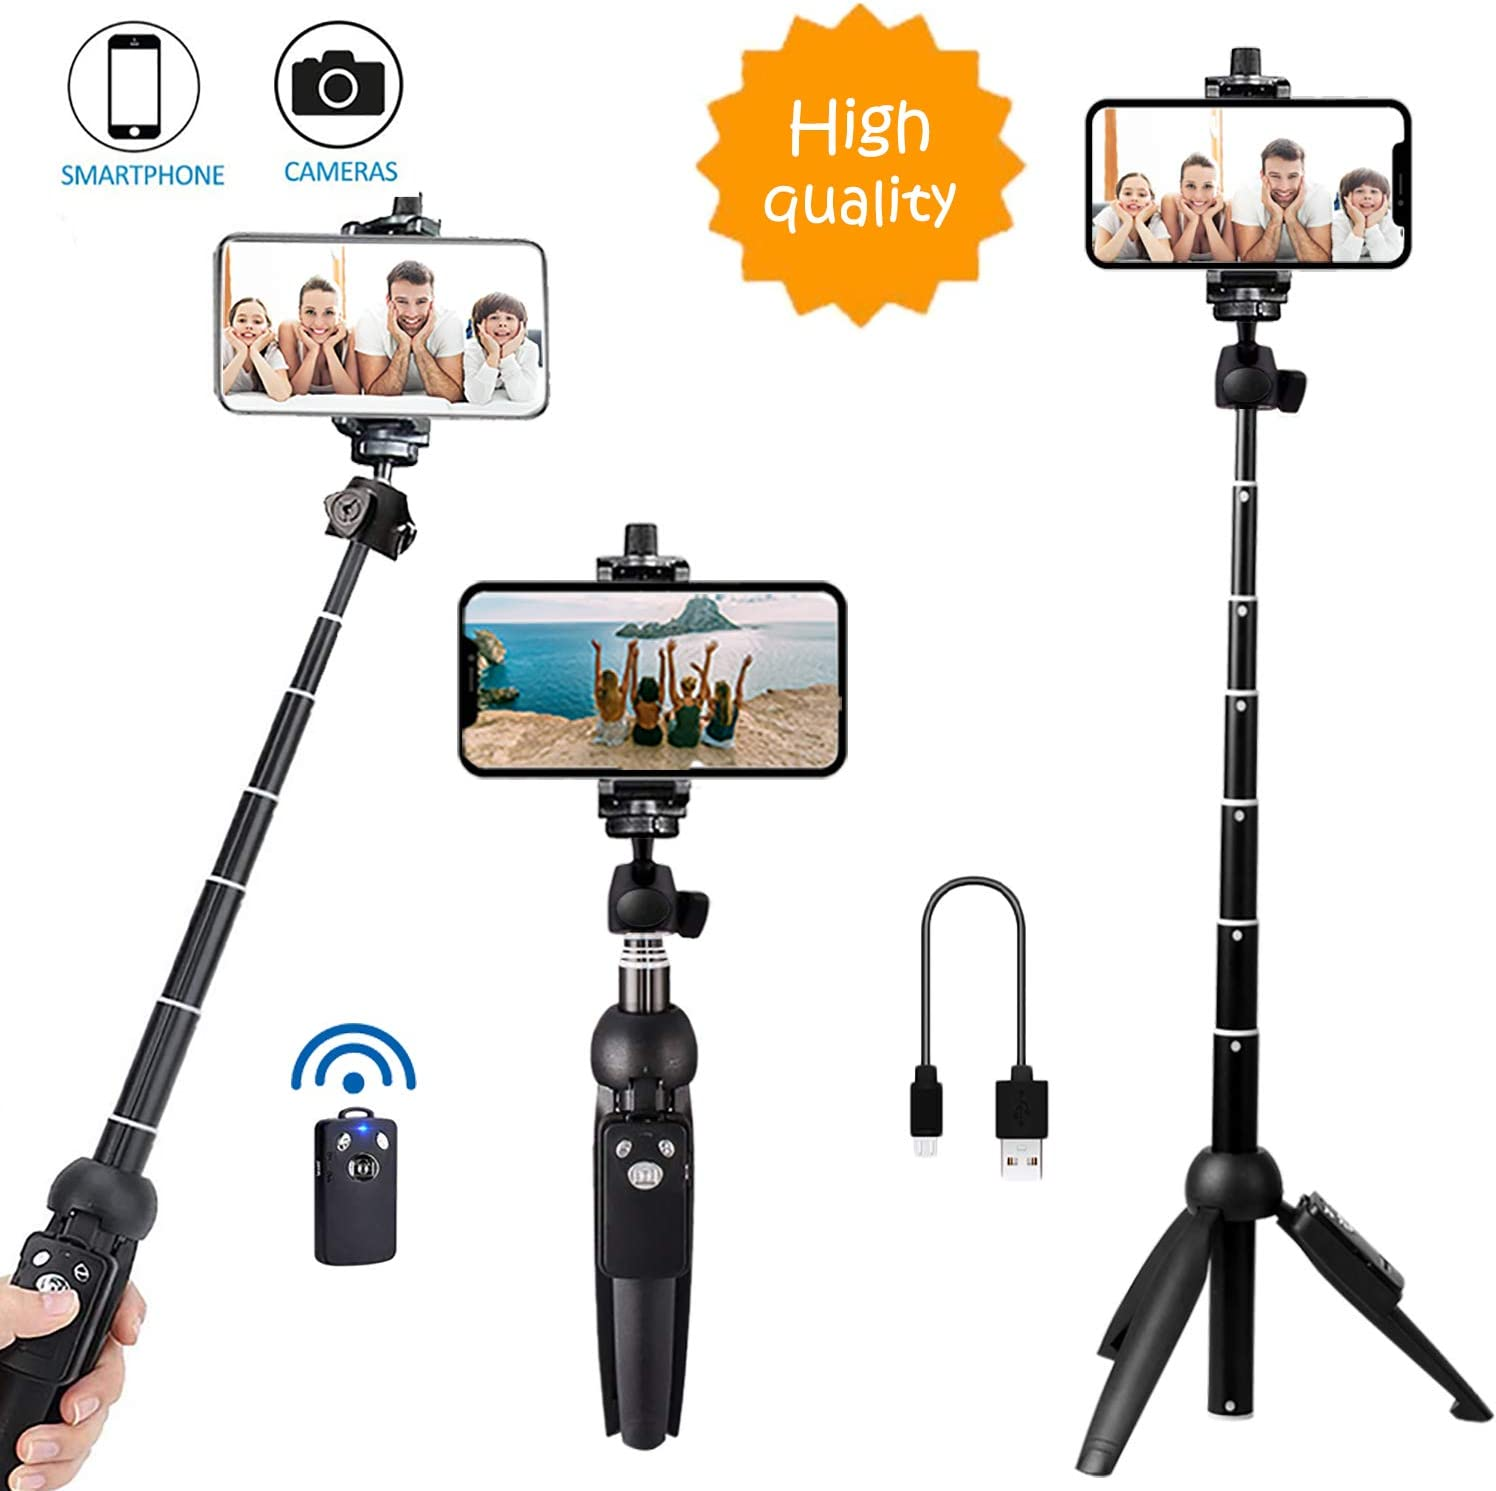 Bluehorn All in one Portable 40 Inch Aluminum Alloy Selfie Stick Phone Tripod with Wireless Remote Shutter for iPhone 12 11 pro Xs Max Xr X 8 7 6 Plus, Android Samsung Smartphone Vlogging Live Stream: Camera & Photo